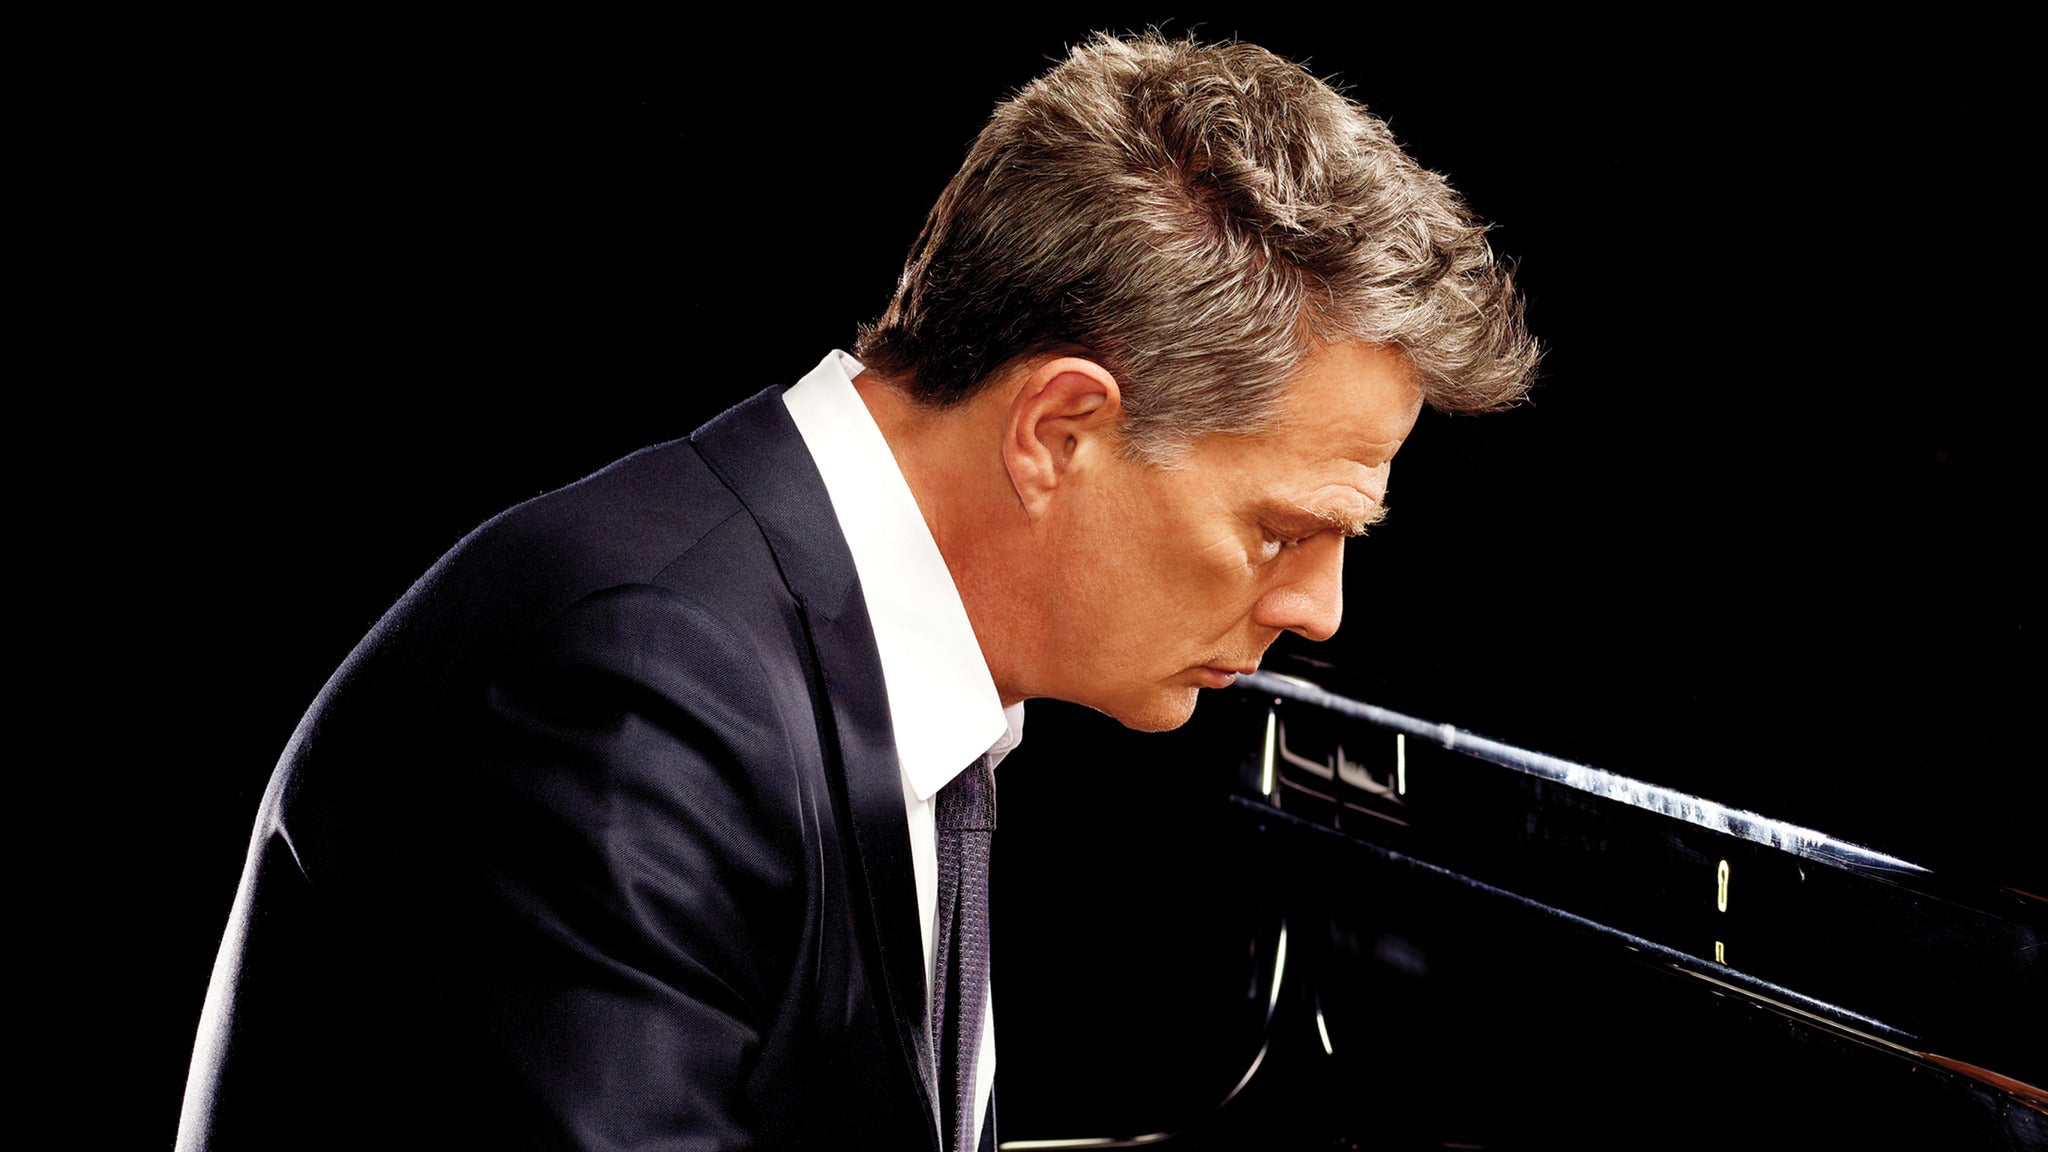 David Foster at Sharon L Morse Performing Arts Center